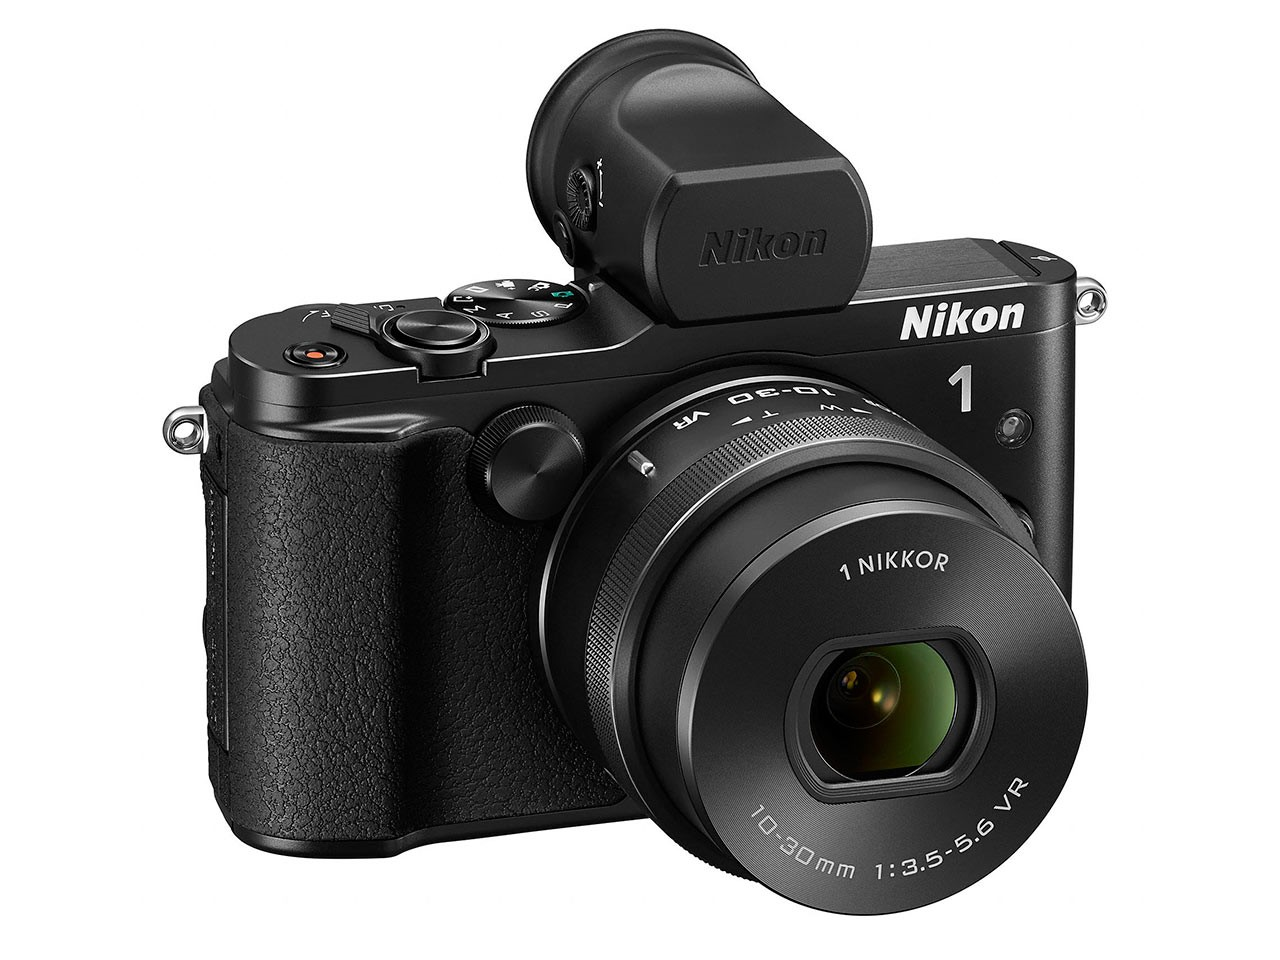 Nikon 1 V3 has just announced today, the price for Nikon 1 V3 with 10